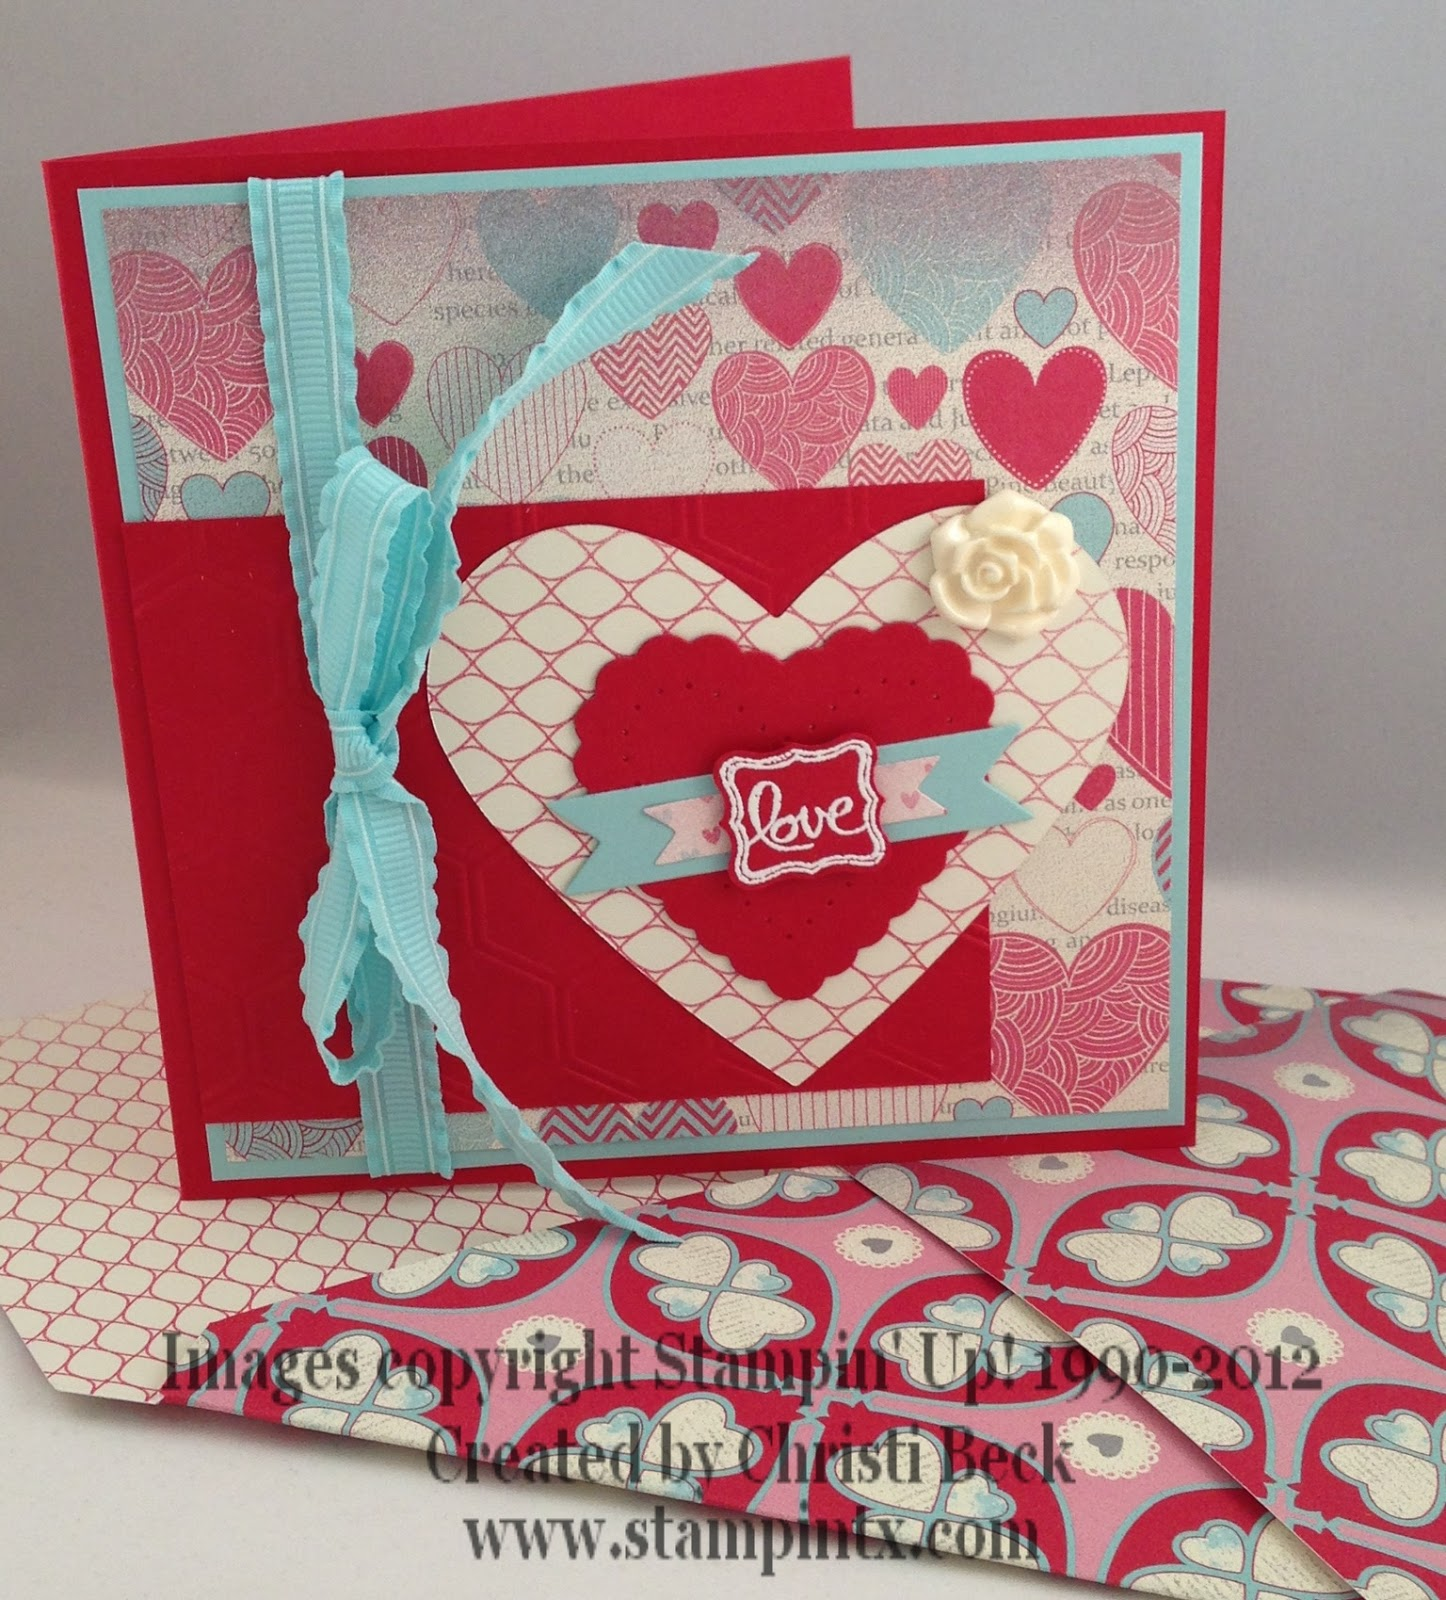 stampintx stampin' up valetines cards  projects